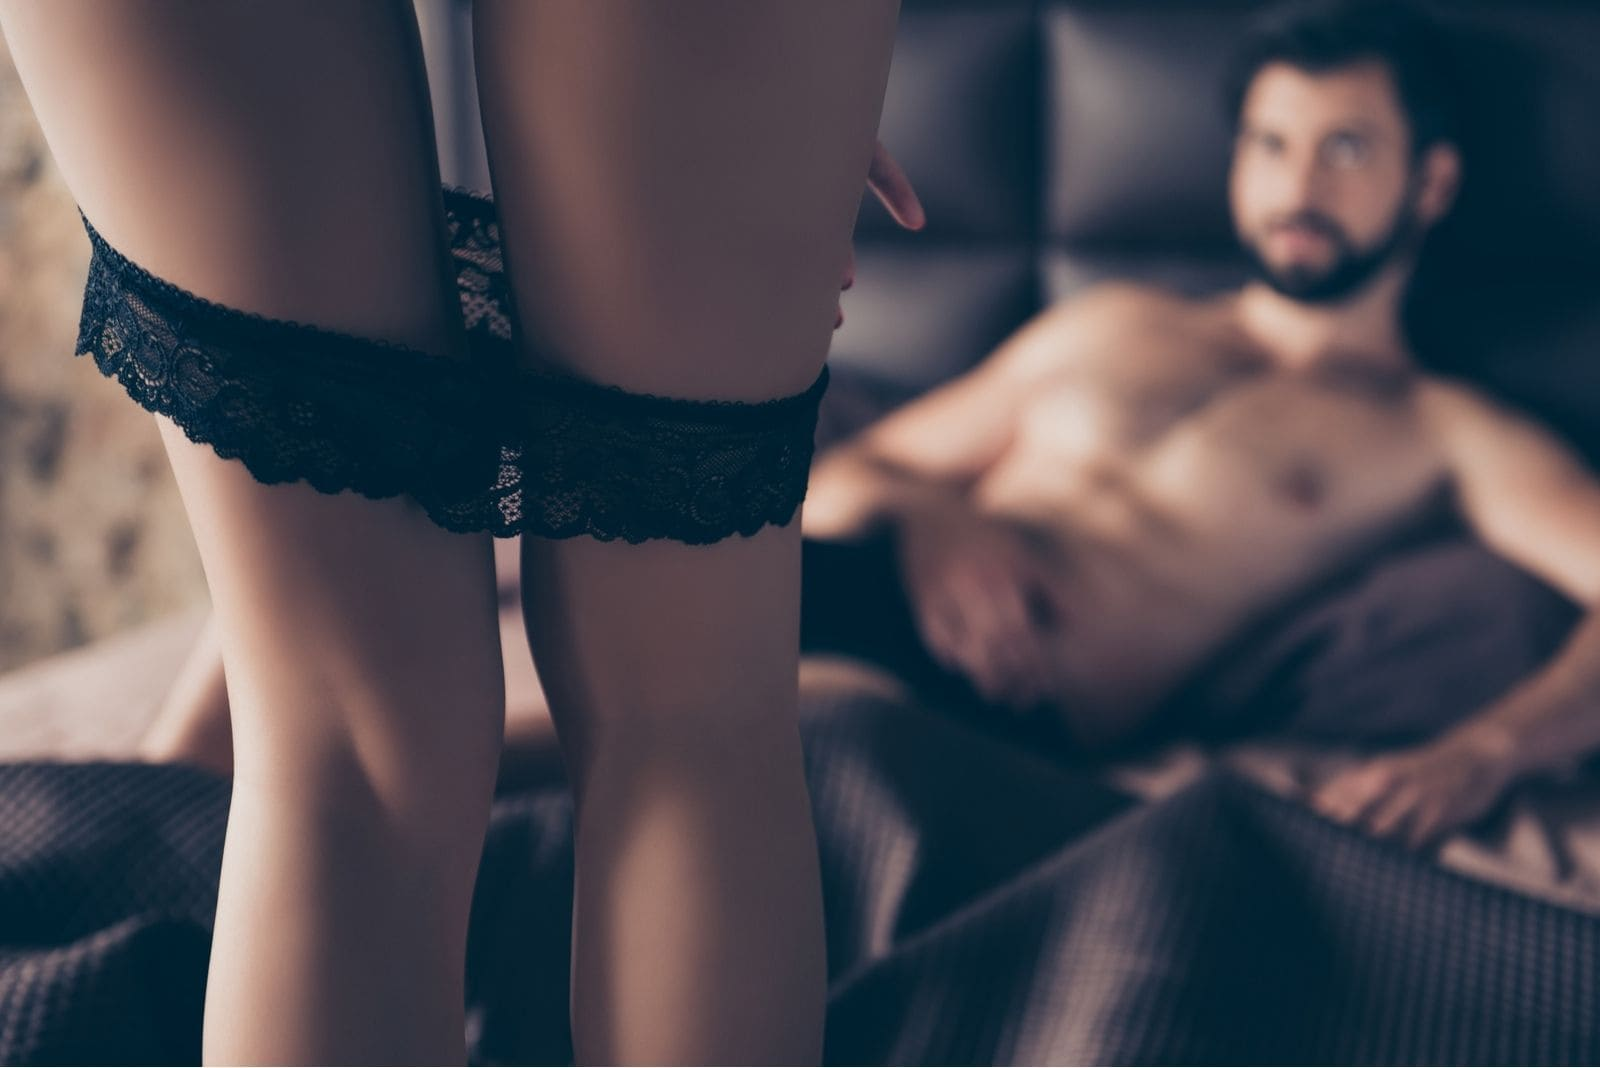 man lying down in bed watching a woman taking off her undies